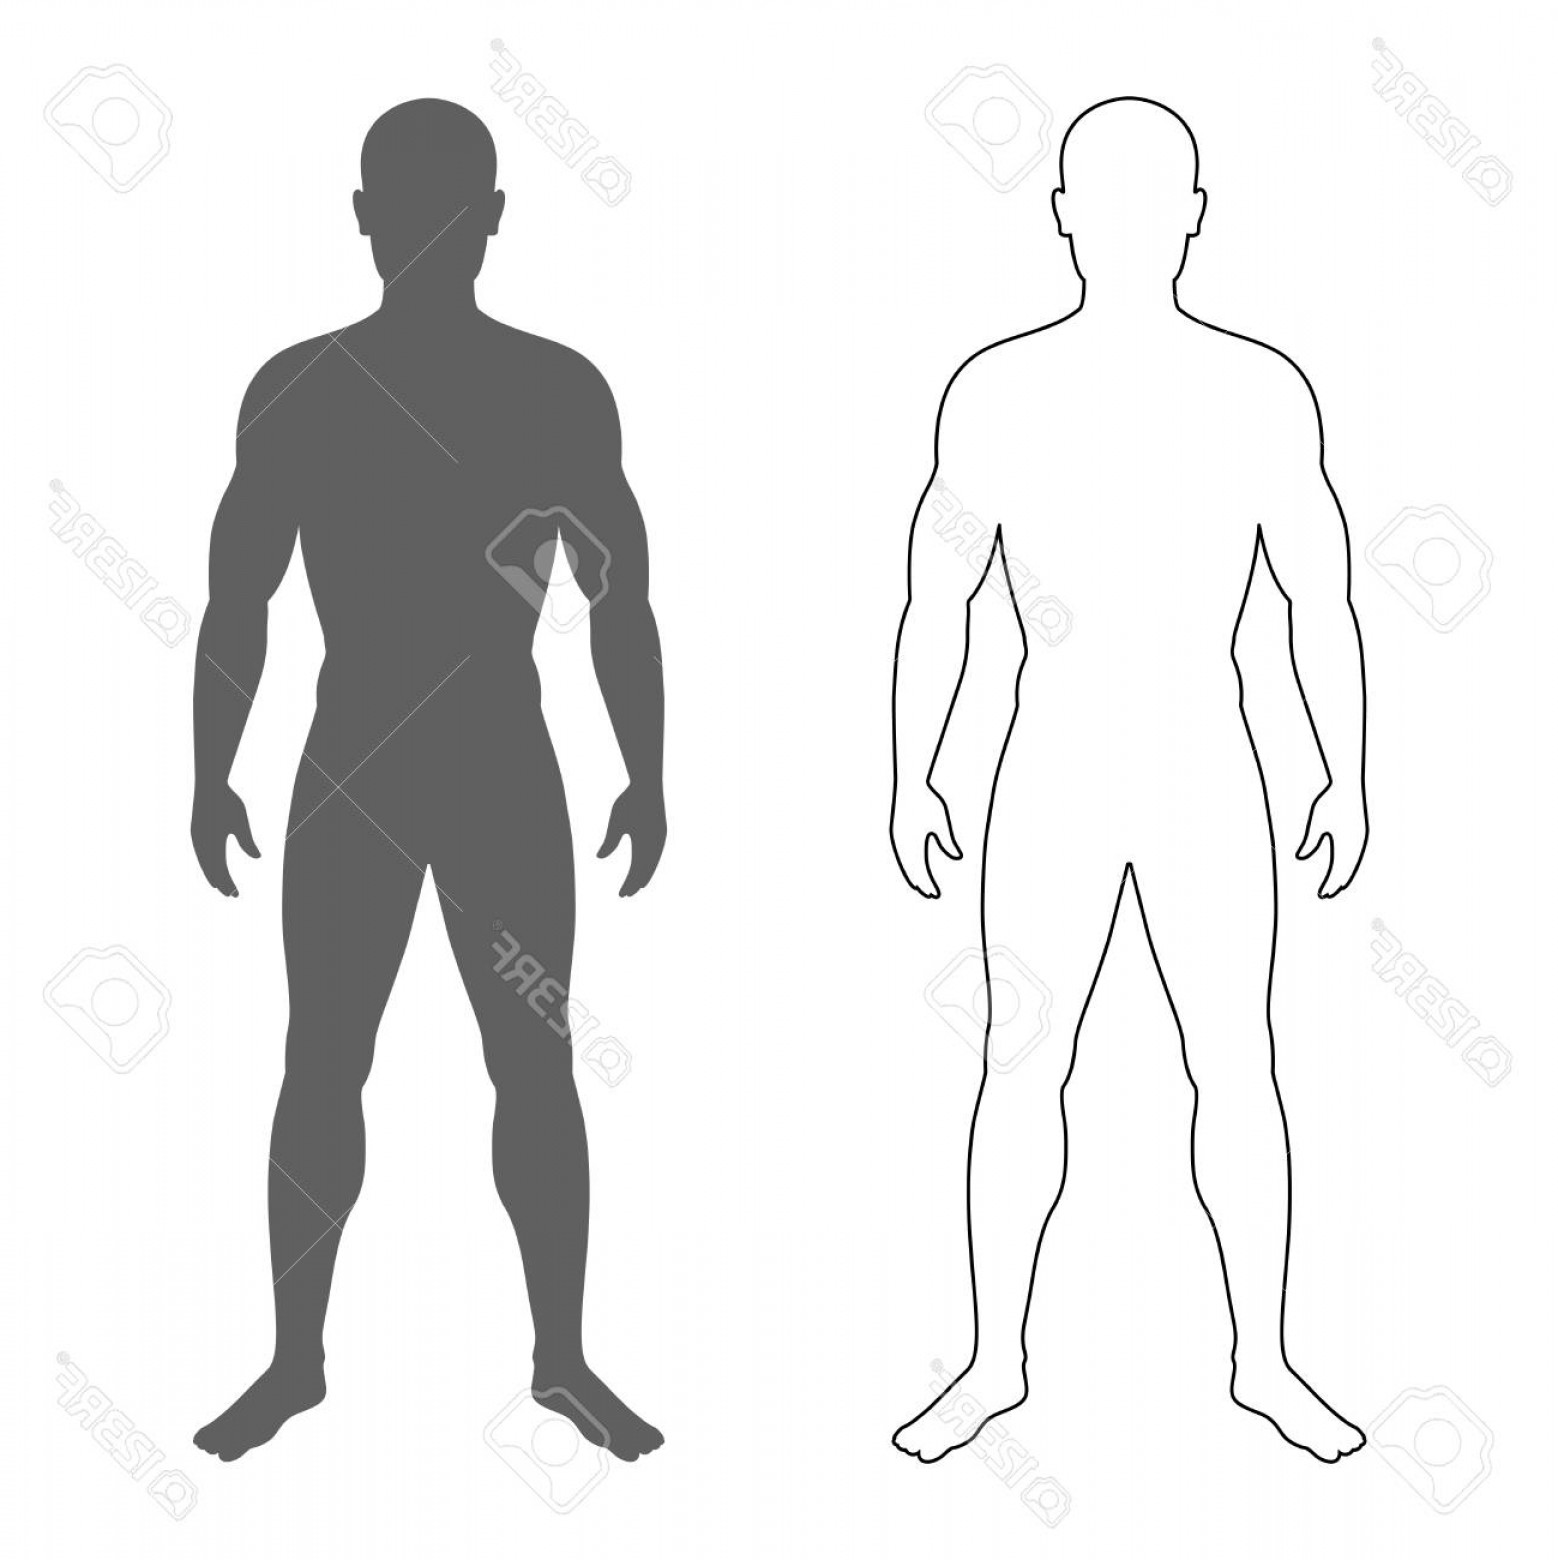 Human Body Outline Vector: Photostock Vector Male Human Body Silhouette And Contour Isolated Mens Symbols On White Background Vector Illustration